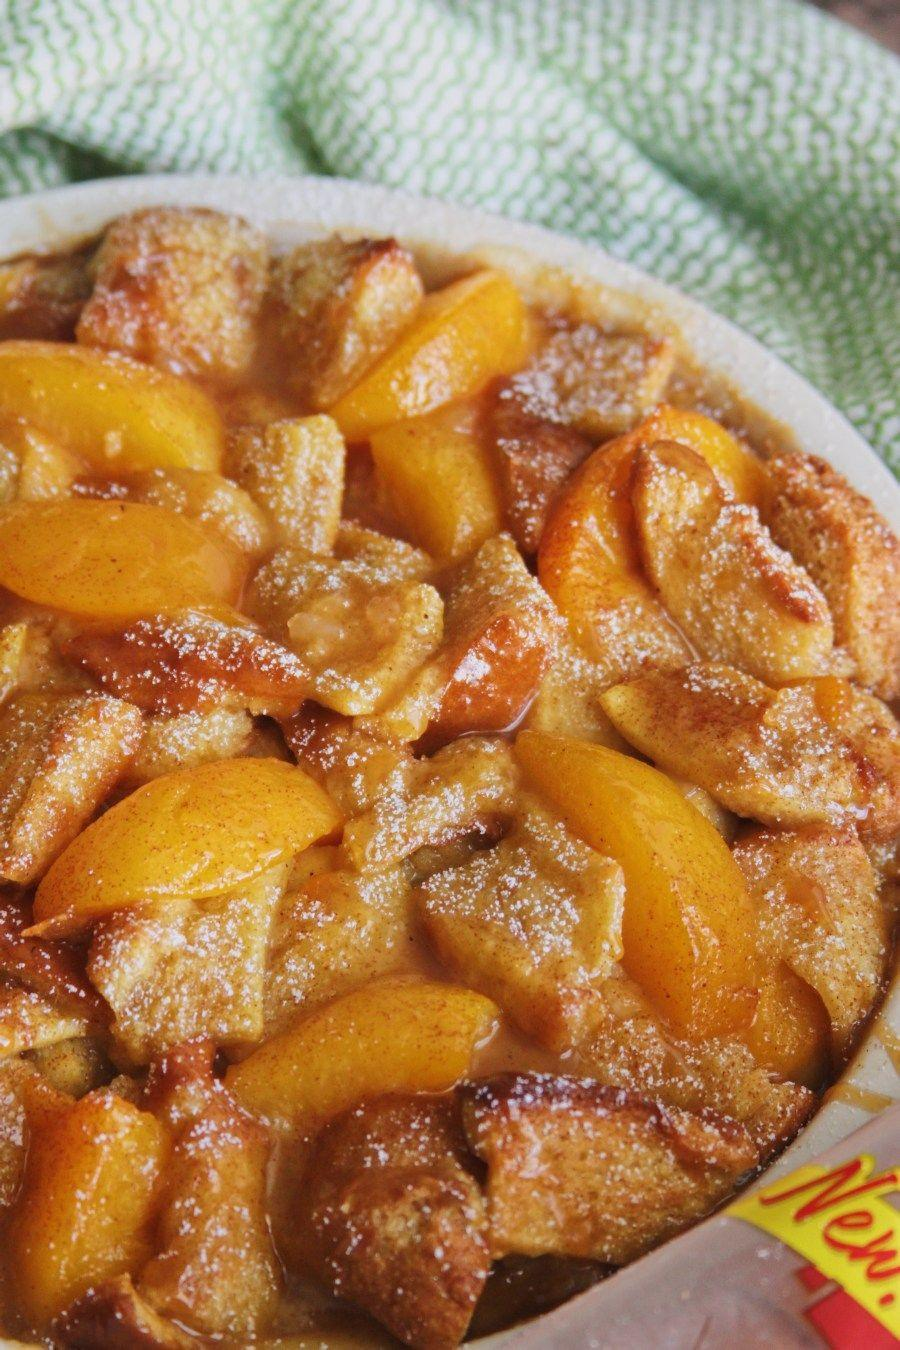 """<p>When this cobbler starts baking, your home will smell absolutely delightful. Don't skip the caramel drizzle on top!</p><p><strong>Get the recipe at <a href=""""https://margaritasontherocks.com/caramel-peach-cobbler-bread-pudding-w-sara-lee-artesano/"""" rel=""""nofollow noopener"""" target=""""_blank"""" data-ylk=""""slk:Margarita's on the Rocks"""" class=""""link rapid-noclick-resp"""">Margarita's on the Rocks</a>.</strong></p><p><a class=""""link rapid-noclick-resp"""" href=""""https://go.redirectingat.com?id=74968X1596630&url=https%3A%2F%2Fwww.walmart.com%2Fsearch%2F%3Fquery%3Dpioneer%2Bwoman%2Bcasserole&sref=https%3A%2F%2Fwww.thepioneerwoman.com%2Ffood-cooking%2Frecipes%2Fg36382592%2Fpeach-desserts%2F"""" rel=""""nofollow noopener"""" target=""""_blank"""" data-ylk=""""slk:SHOP CASSEROLES"""">SHOP CASSEROLES</a></p>"""